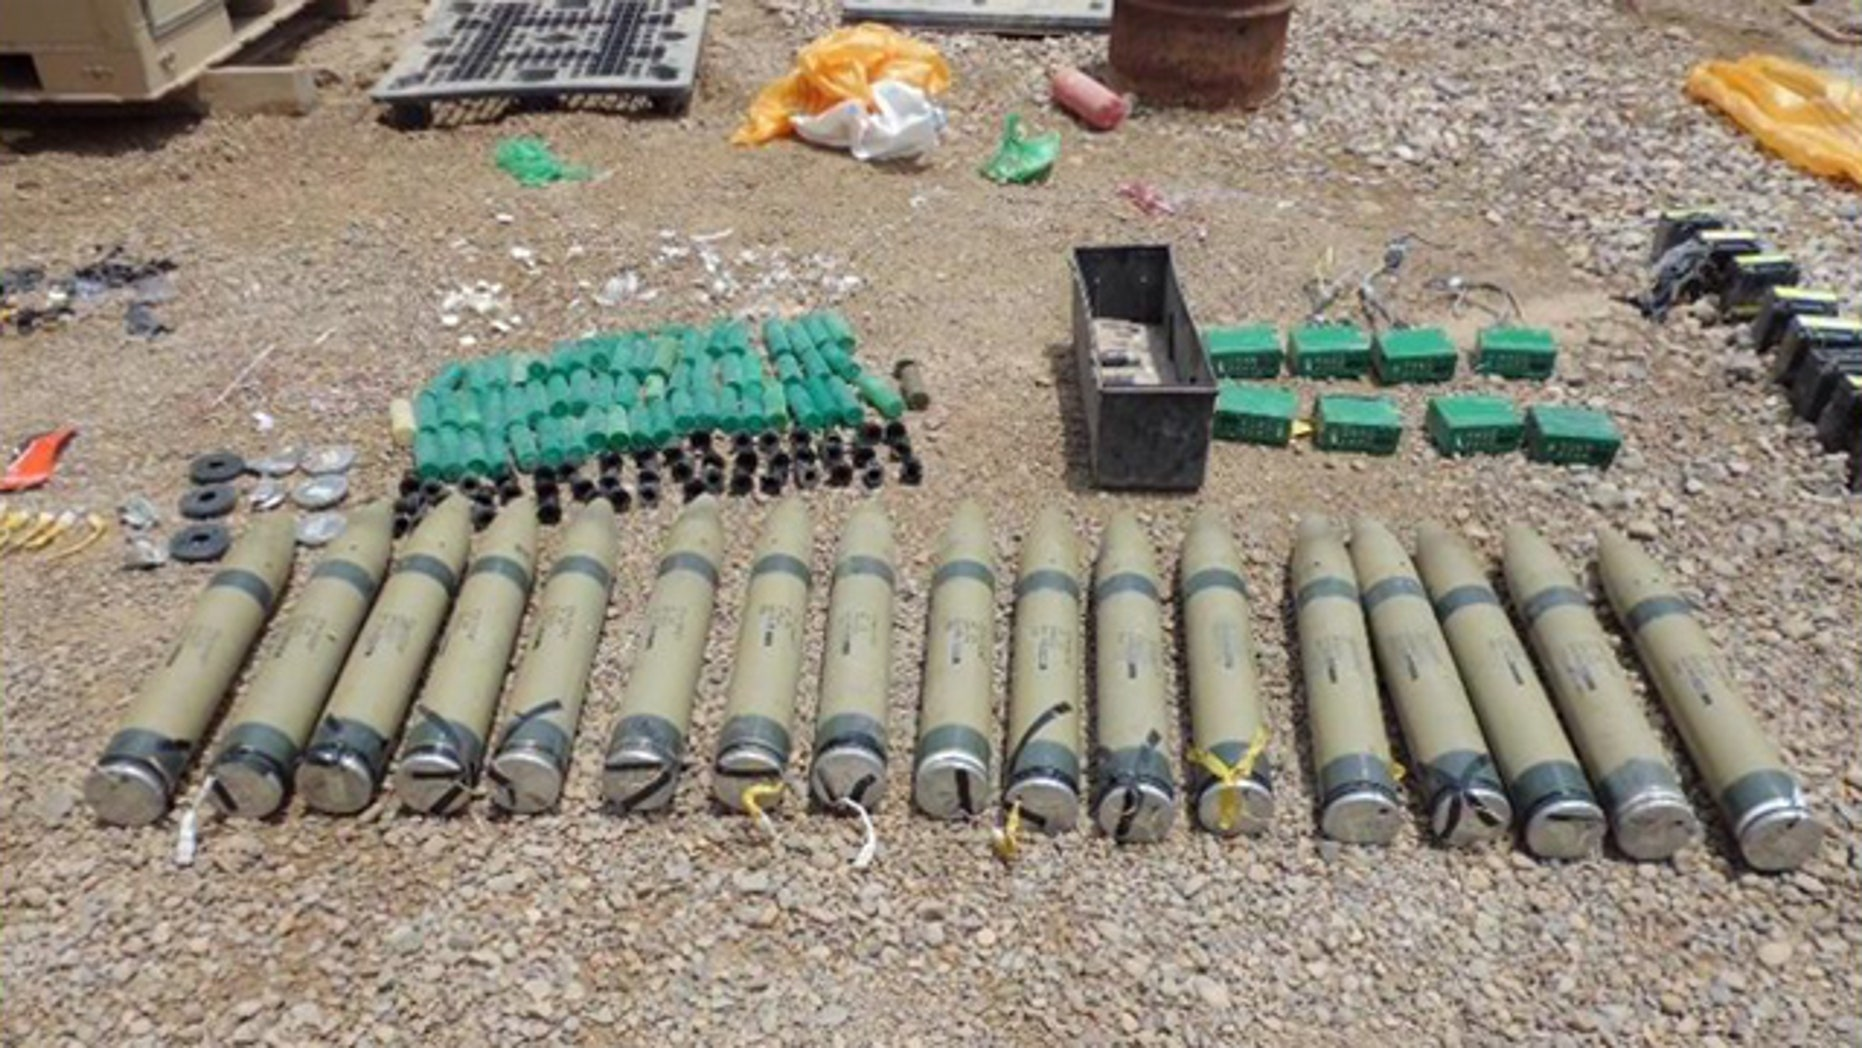 A failed Improvised Rocket-Assisted Missile attack on a U.S. military outpost in eastern Iraq led an explosives team to this nearby weapons cache in July. Analysis indicates that the 107mm rockets are unique to Iranian design and manufacturing, validating U.S. assertions that the Iranian Regime has been playing an increasingly nefarious role within Iraq's borders.